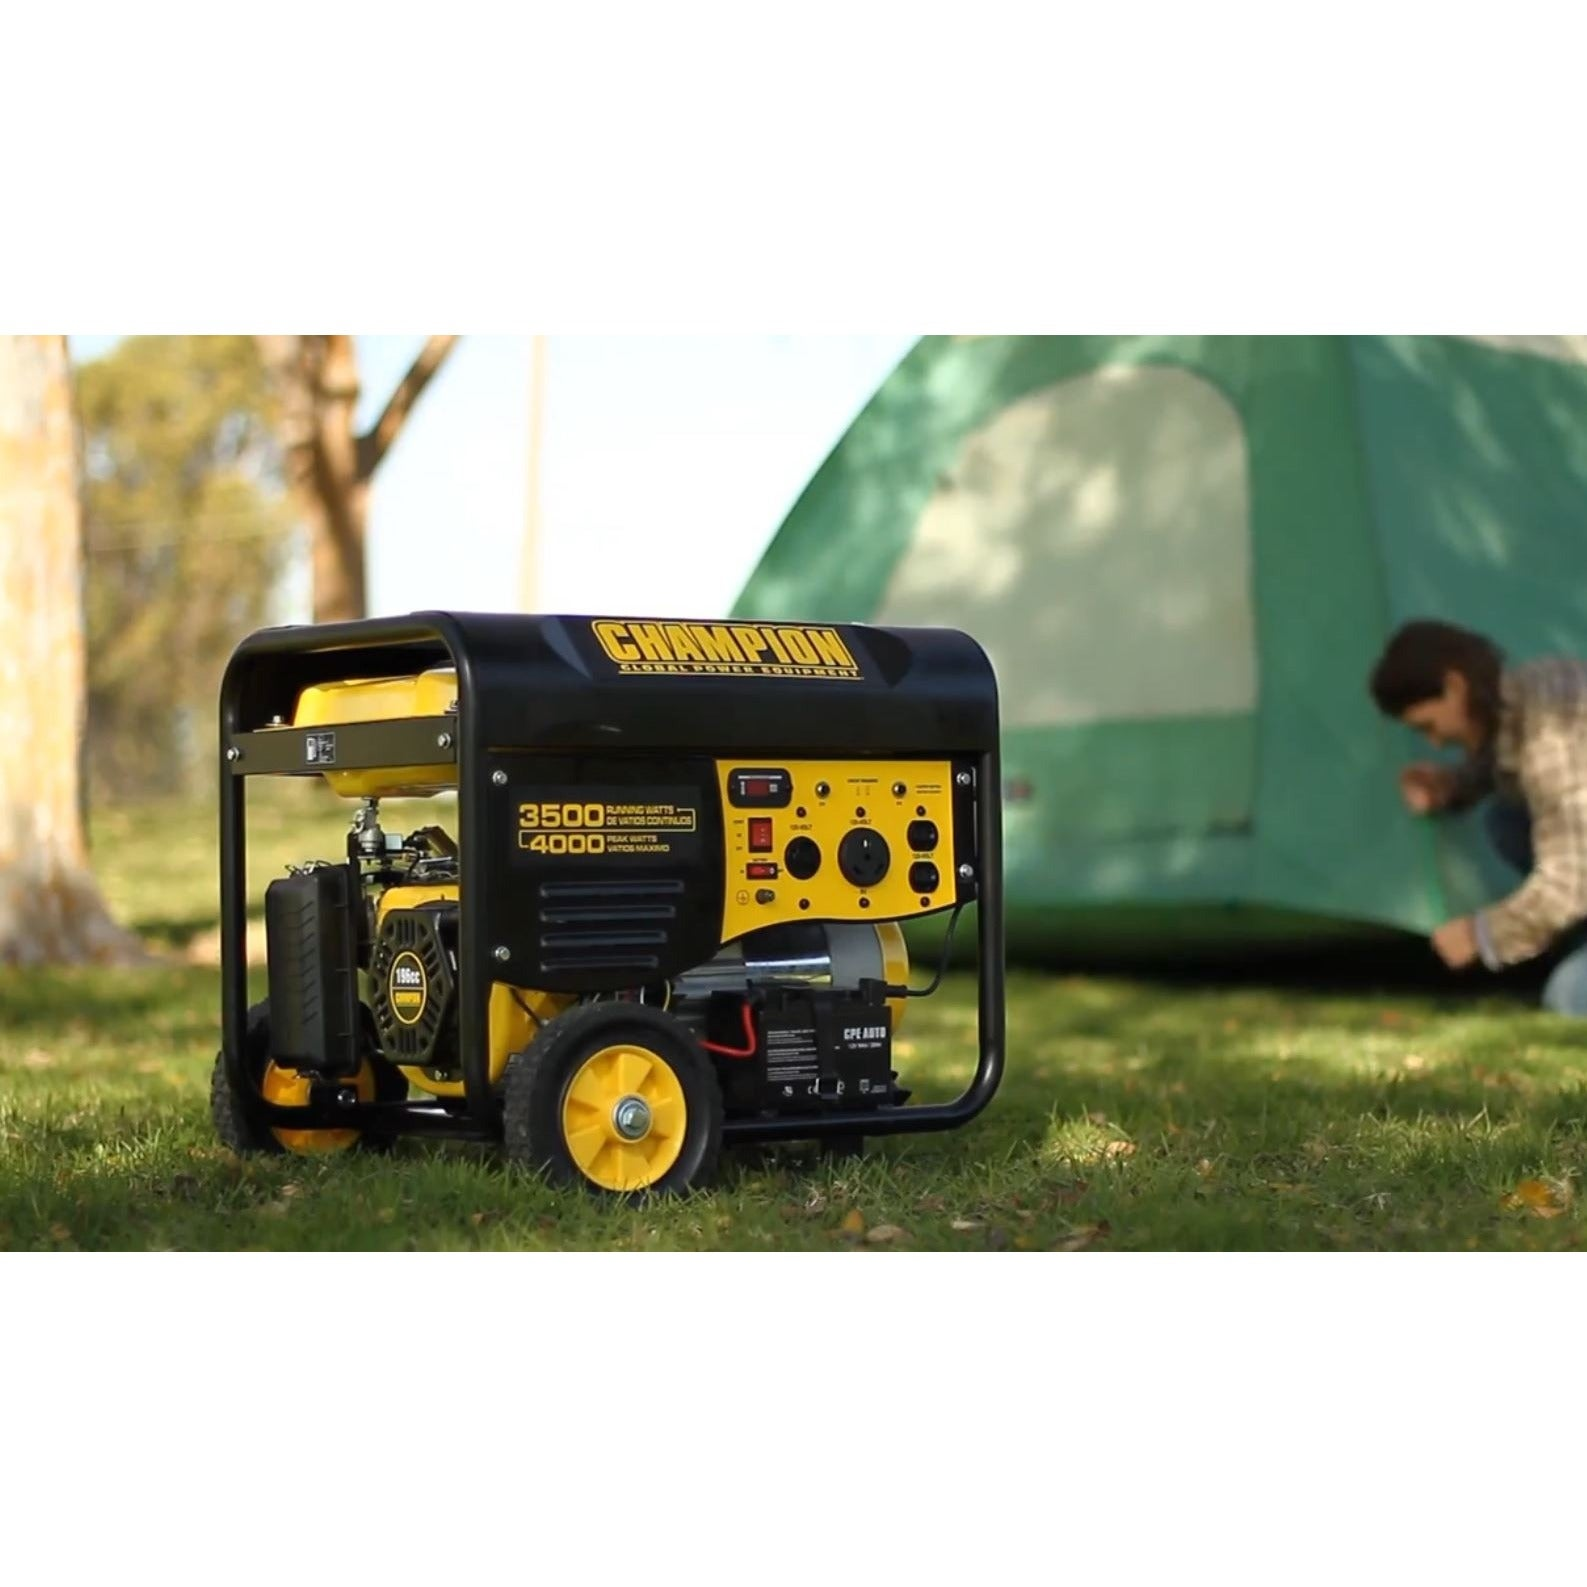 Champion 3500-W RV Ready Portable Generator w/Wireless Remote (EPA)